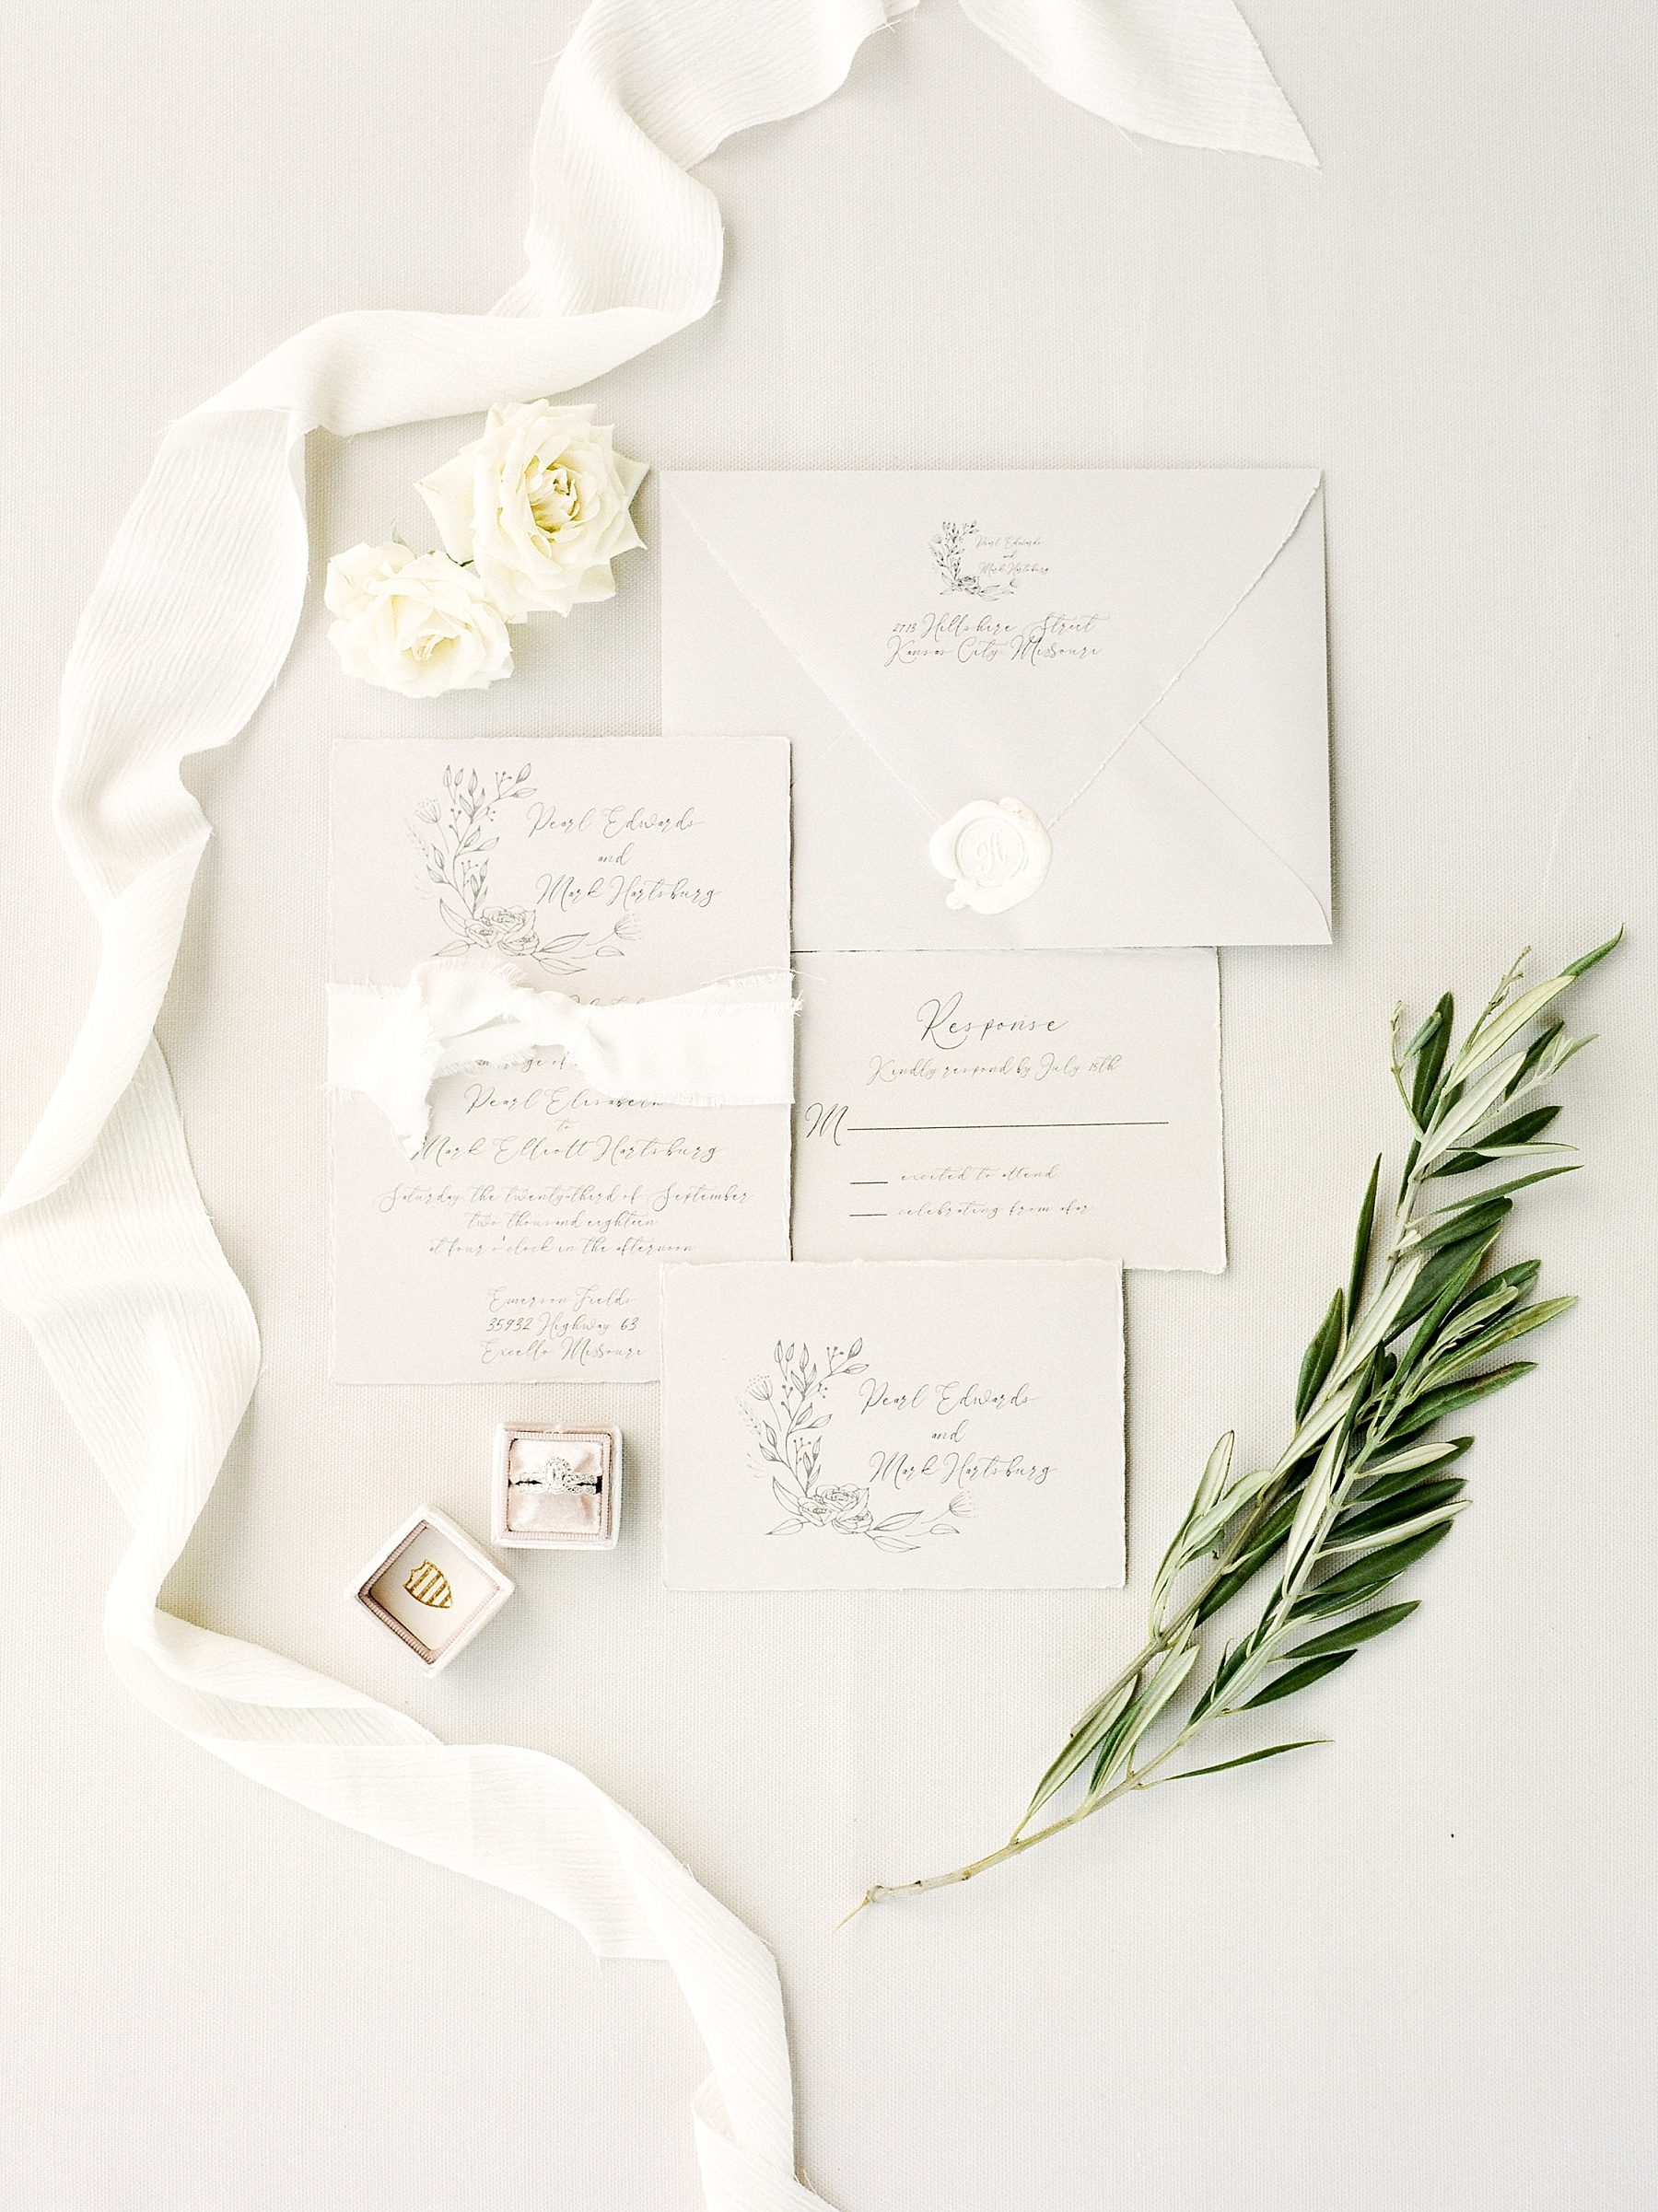 Textural Organic Wedding in All White Venue by Kelsi Kliethermes Wedding Photographer - Missouri, Midwest, and Destinations_0011.jpg